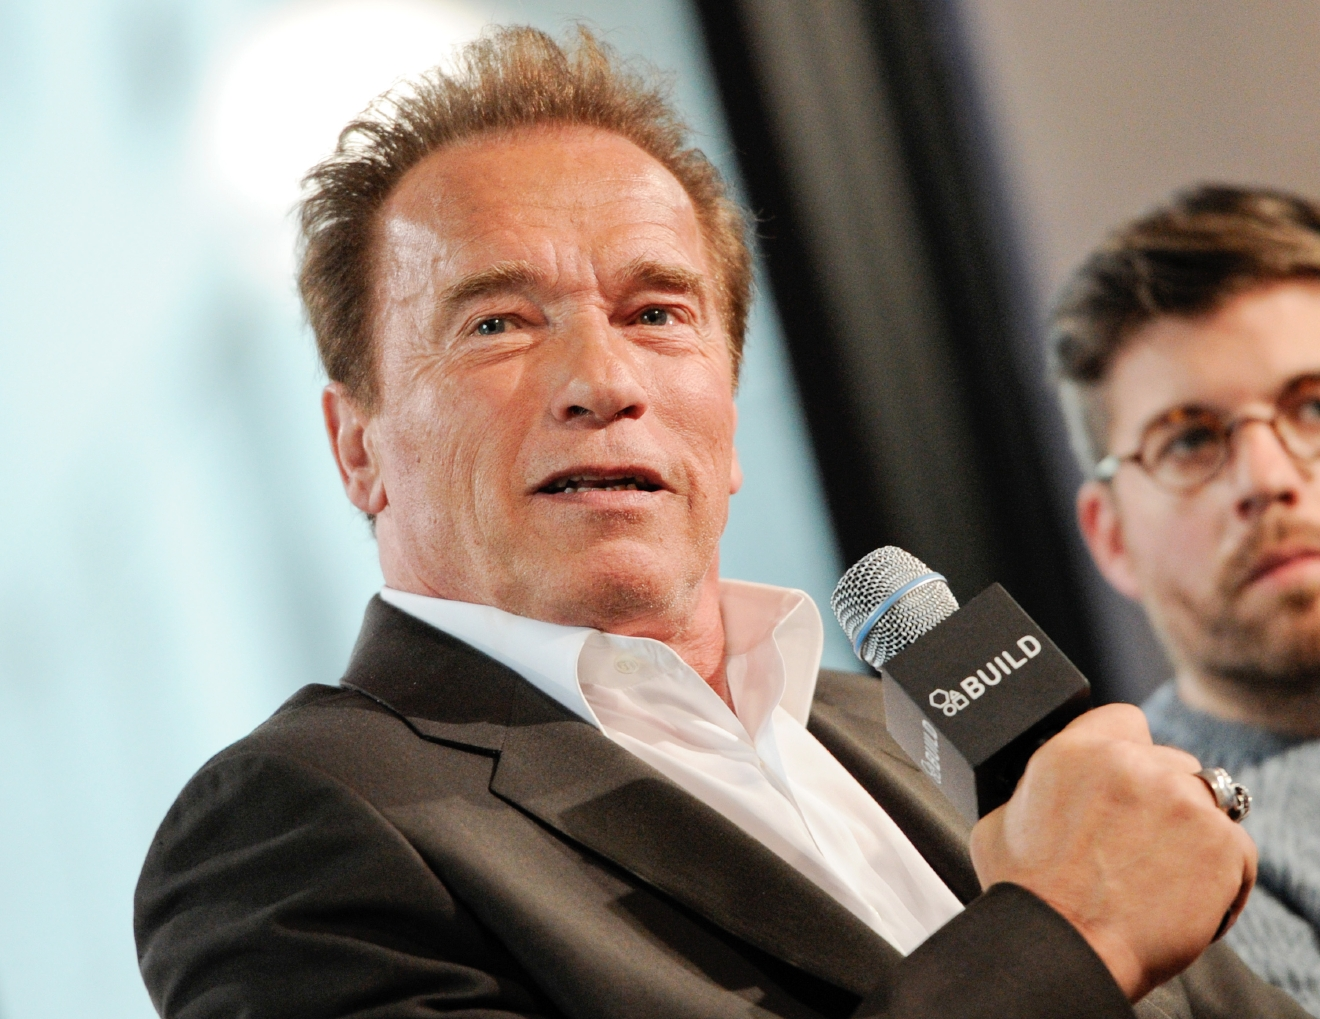 FILE - In this April 22, 2015, file photo, actor Arnold Schwarzenegger participates in AOL's BUILD Speaker Series in New York. Schwarzenegger?s affair with his longtime housekeeper became public after the former California governor and Maria Shriver announced their divorce. Mildred Baena spoke in 2011 about the affair, including disclosing that her son, Joseph Baena, is Schwarzenegger?s son. (Photo by Evan Agostini/Invision/AP, File)